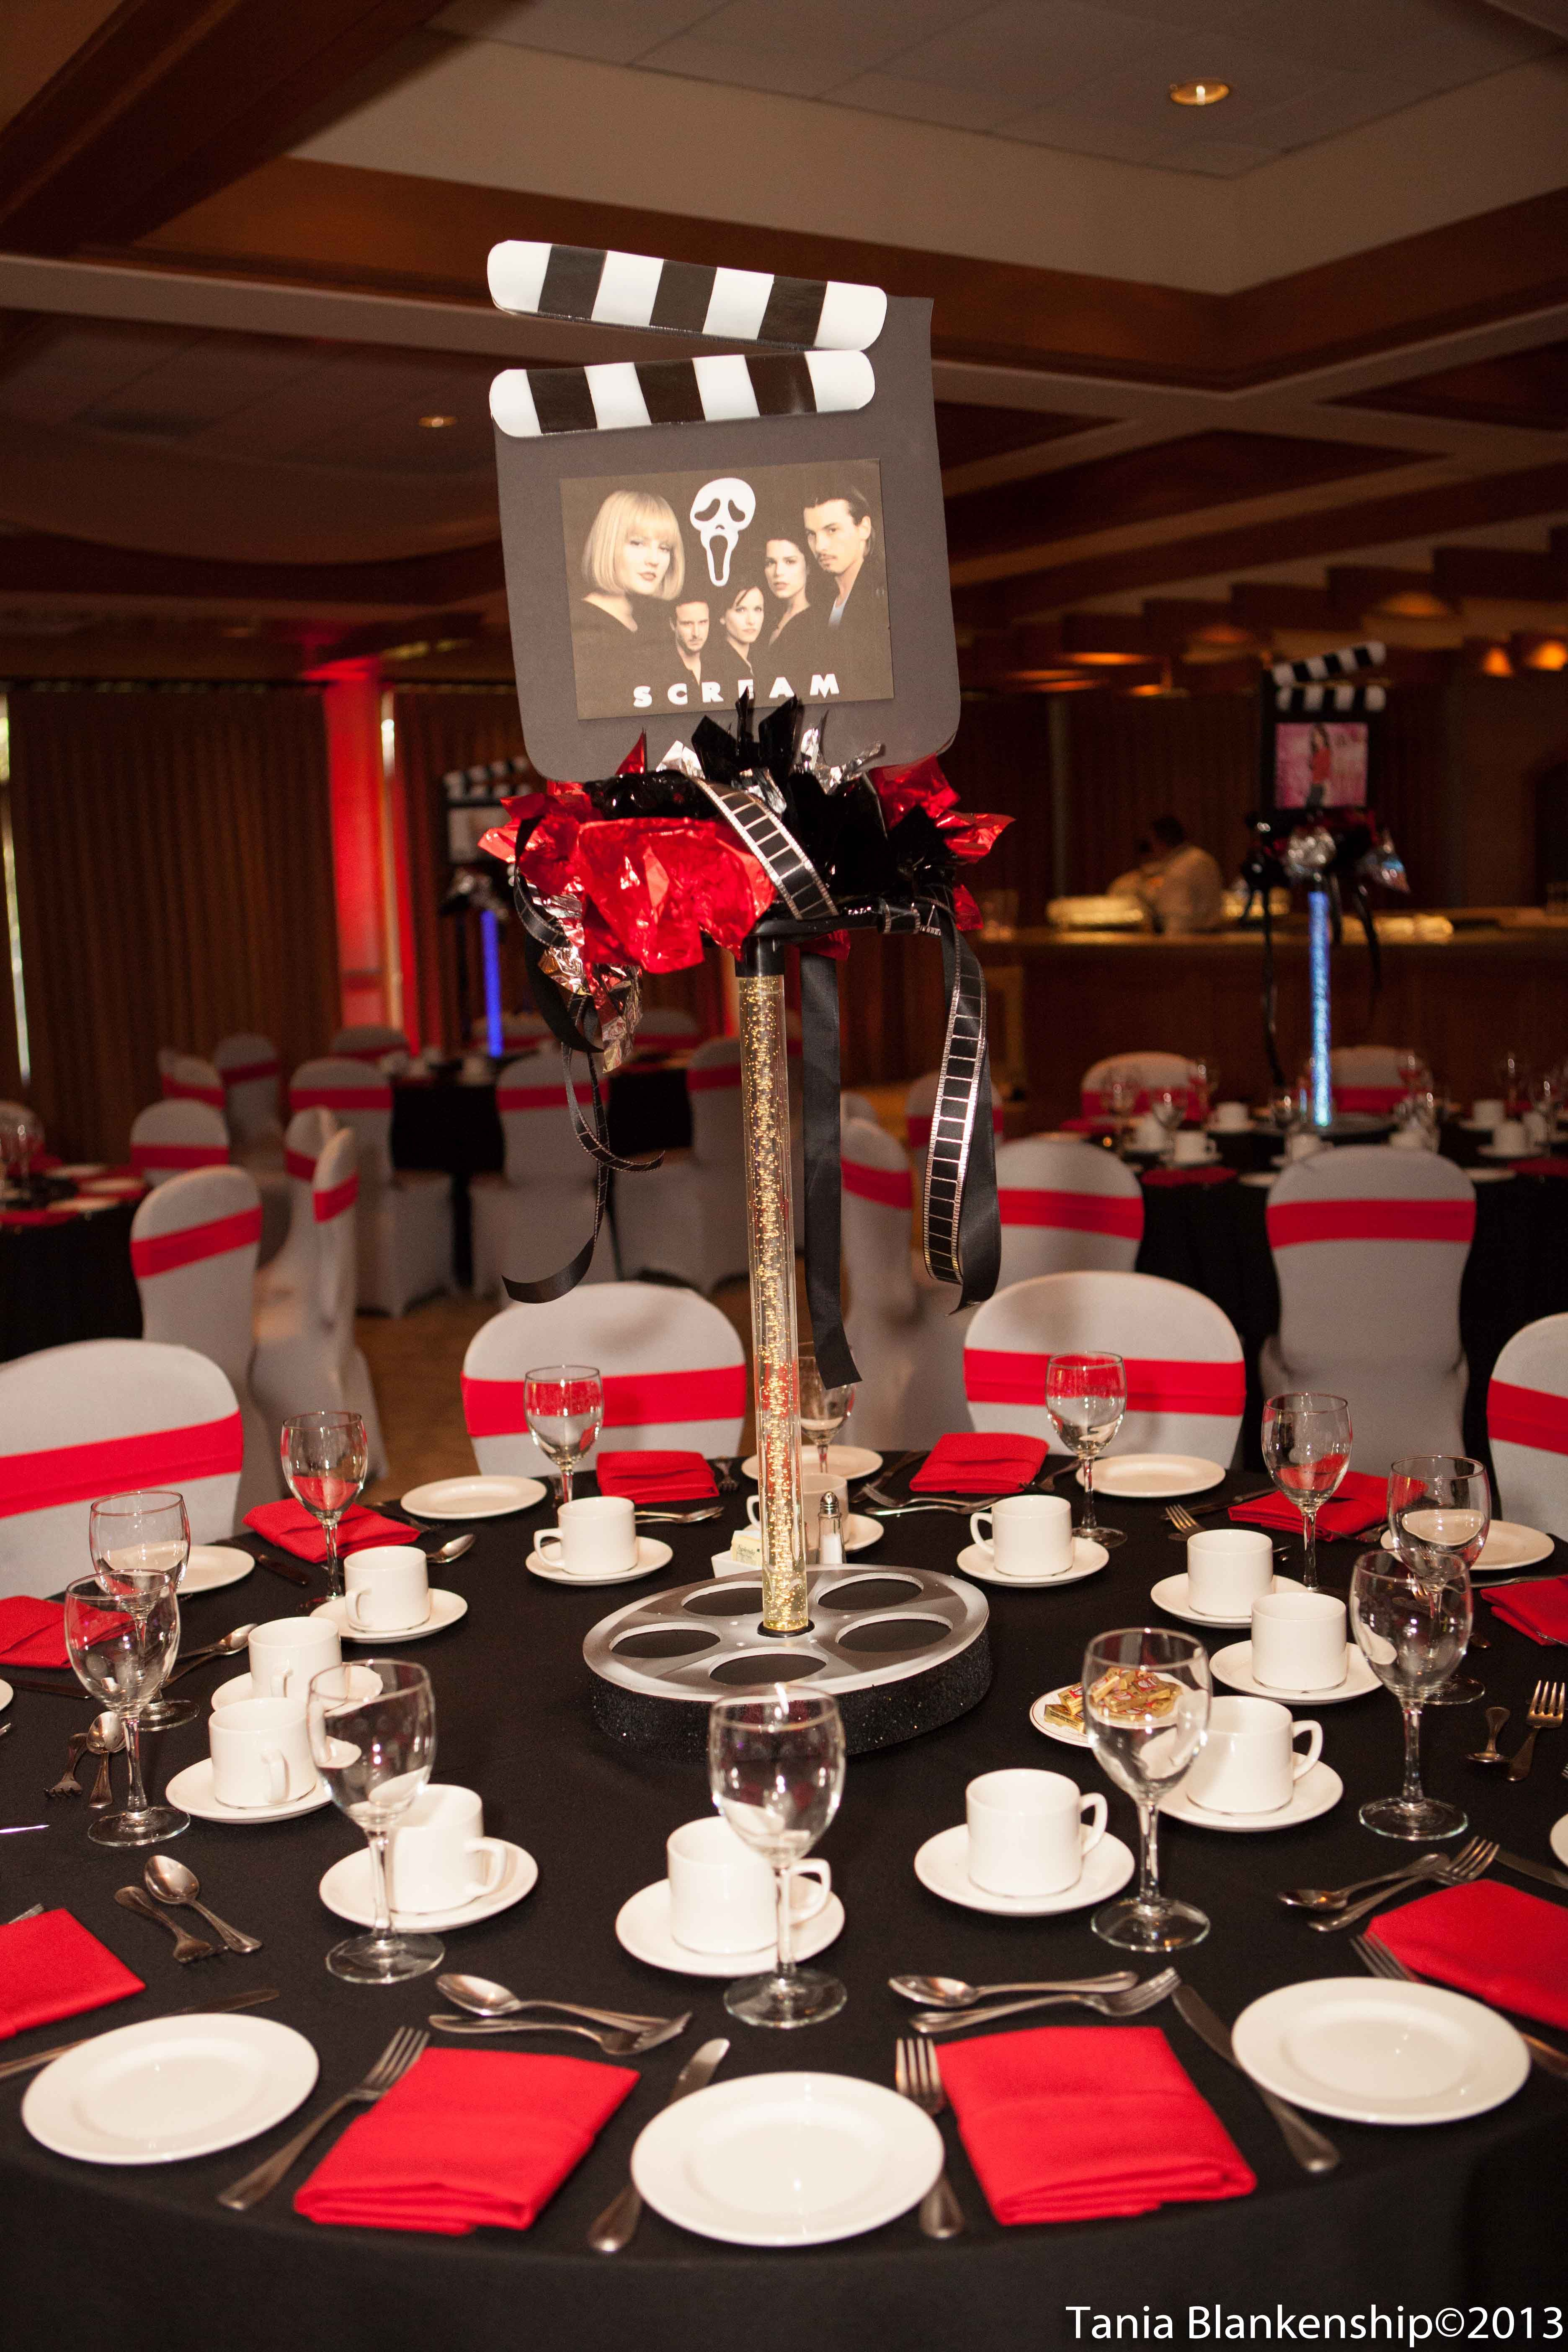 Retro Old Hollywood Wedding Theme Ideas 10 | Old hollywood ... |Old Hollywood Themed Birthday Party